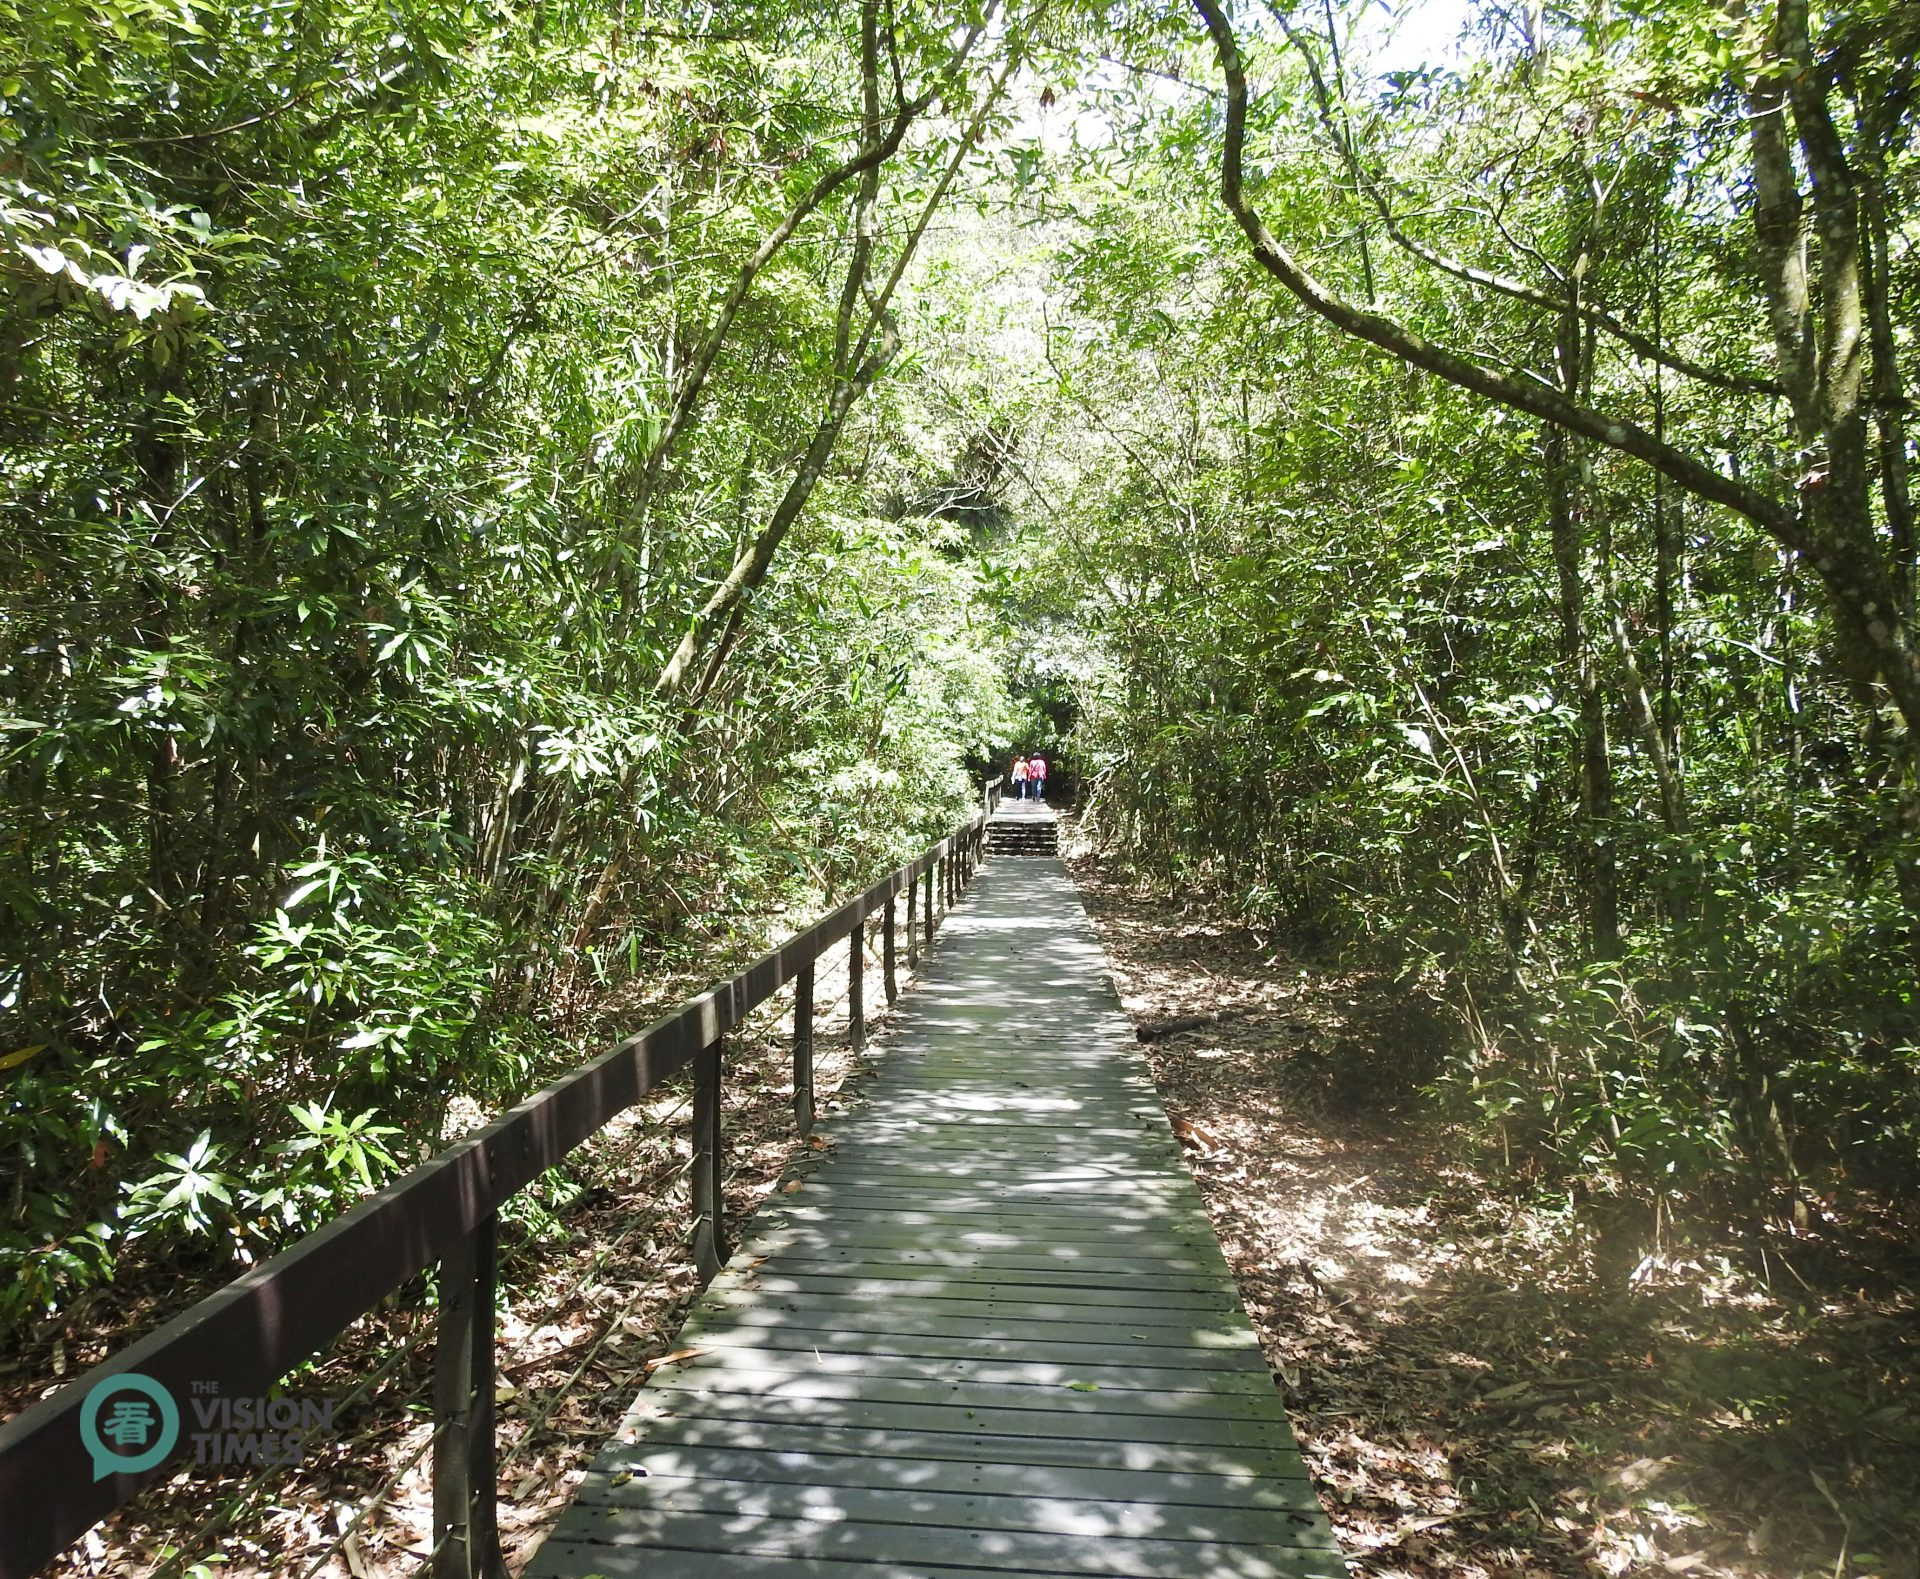 A trail passing through the bamboo forest along Taiwan's Sun Moon Lake. (Image: Billy Shyu / Vision Times)